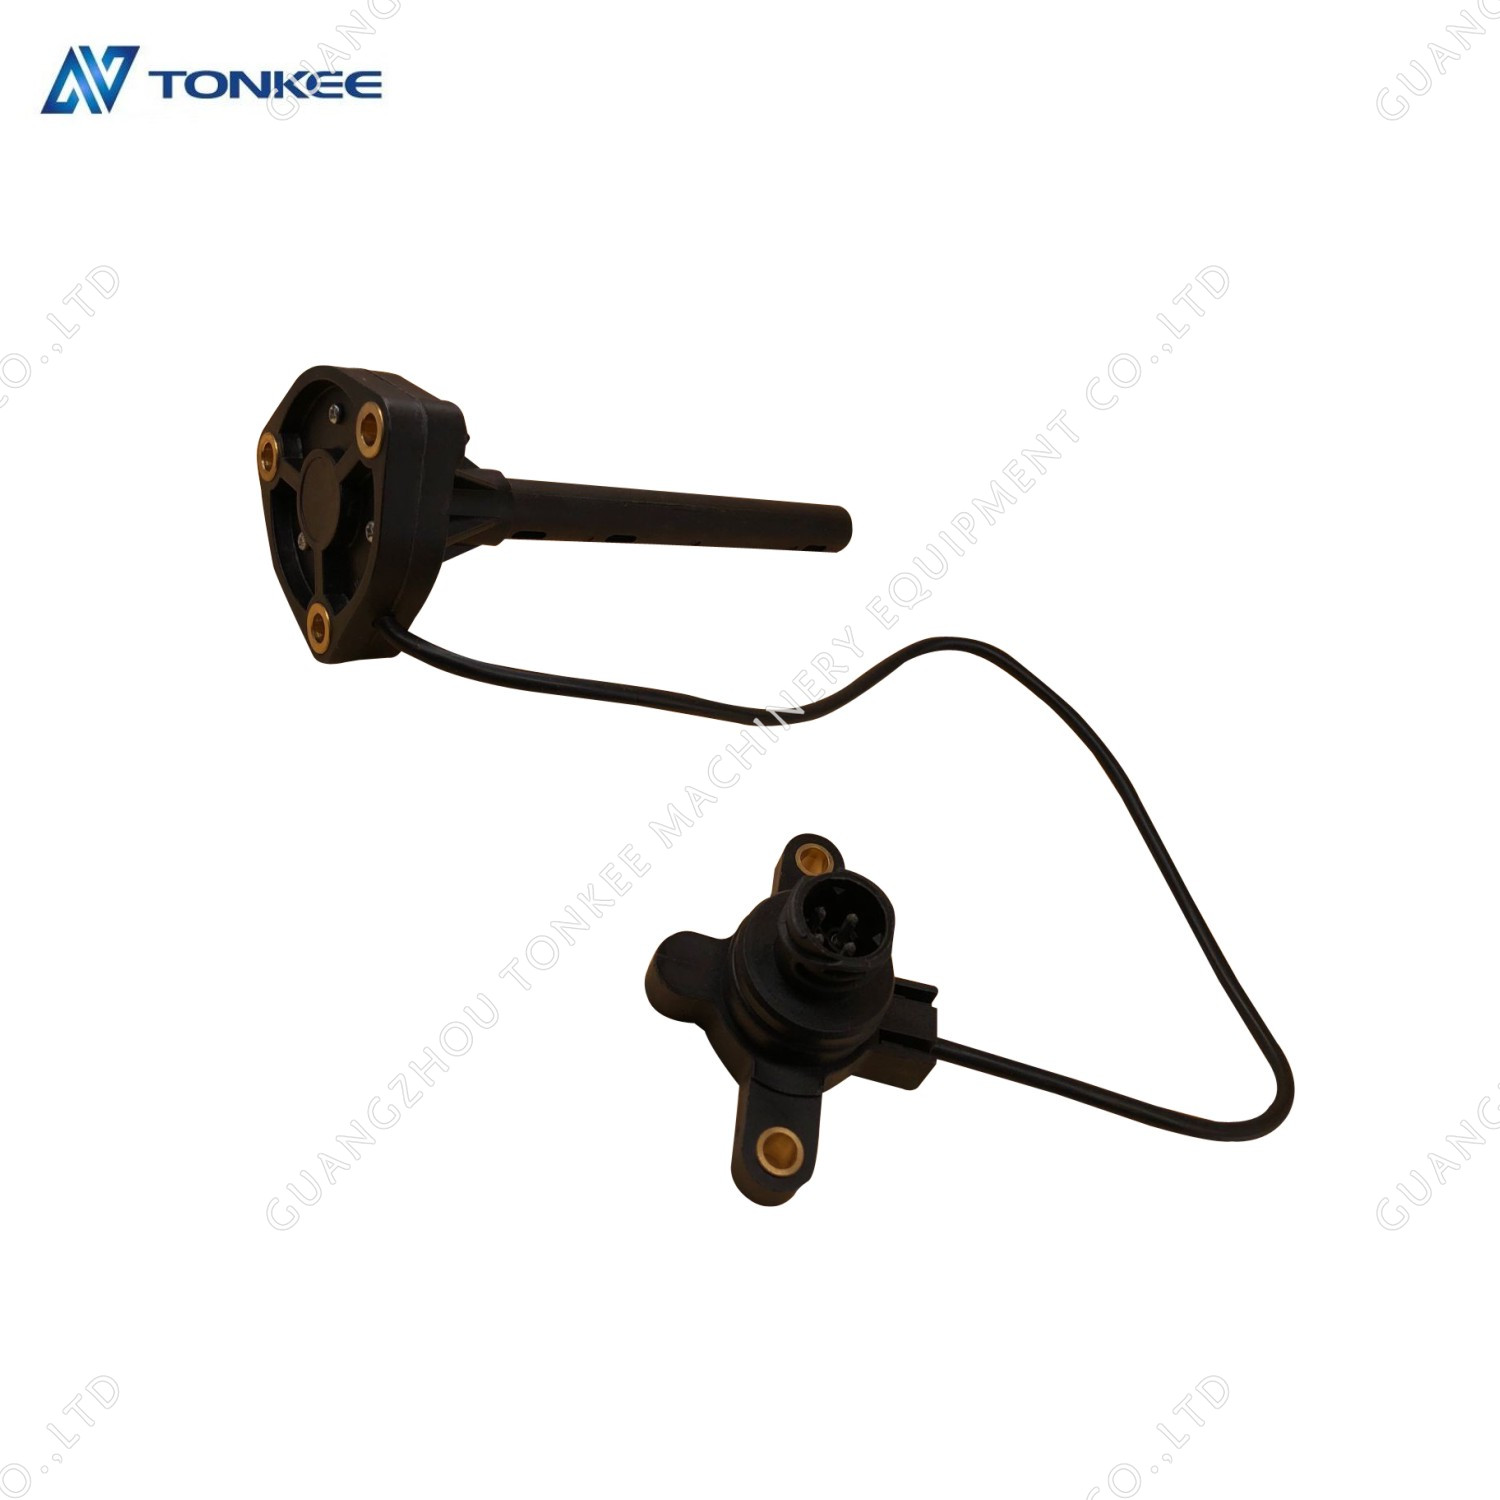 VOE21042447 24424110 oil level sensor EC360B EC460B EC700 excavator oil level sensor for VOLVO excavator truck